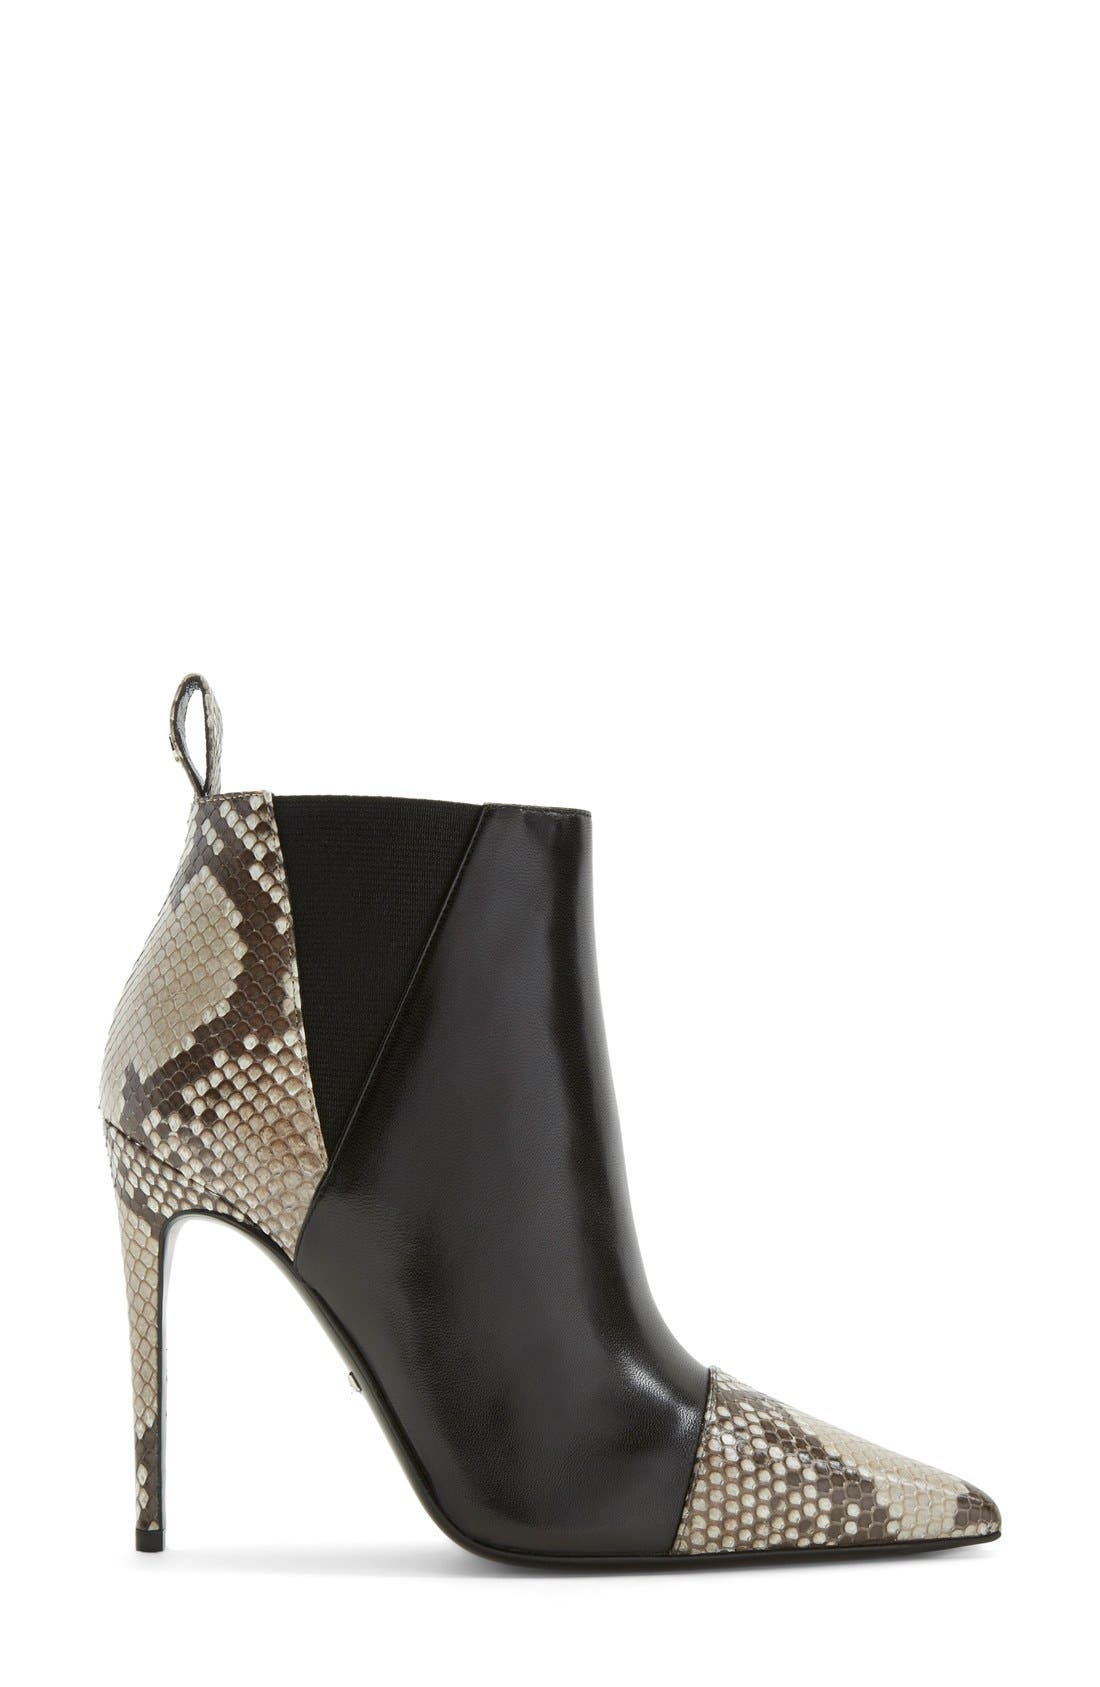 'Daisy' Pointy Toe Genuine Python & Leather Bootie,                             Alternate thumbnail 3, color,                             001